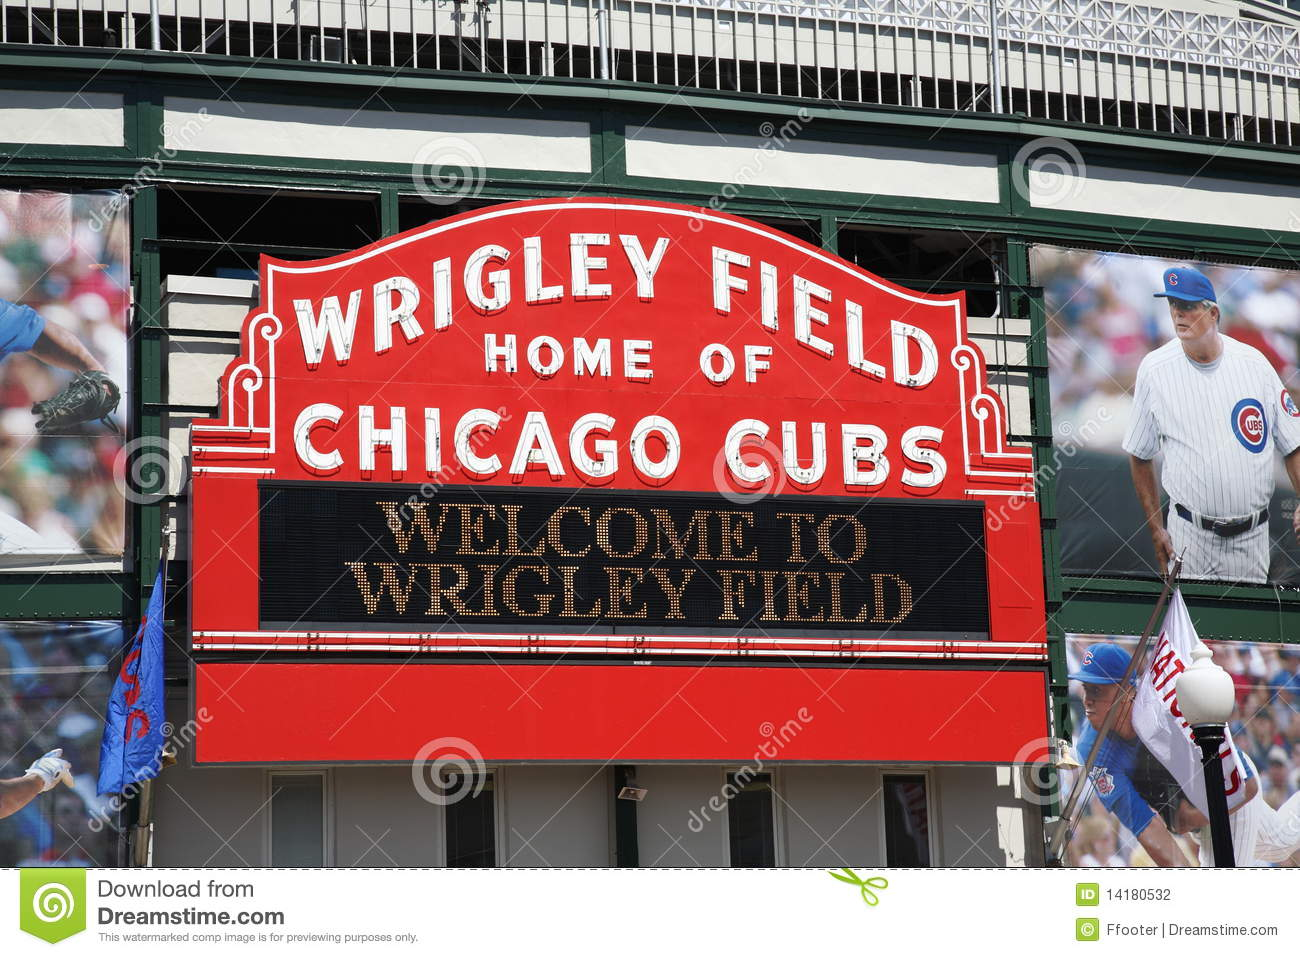 Chicago cubs поле wrigley